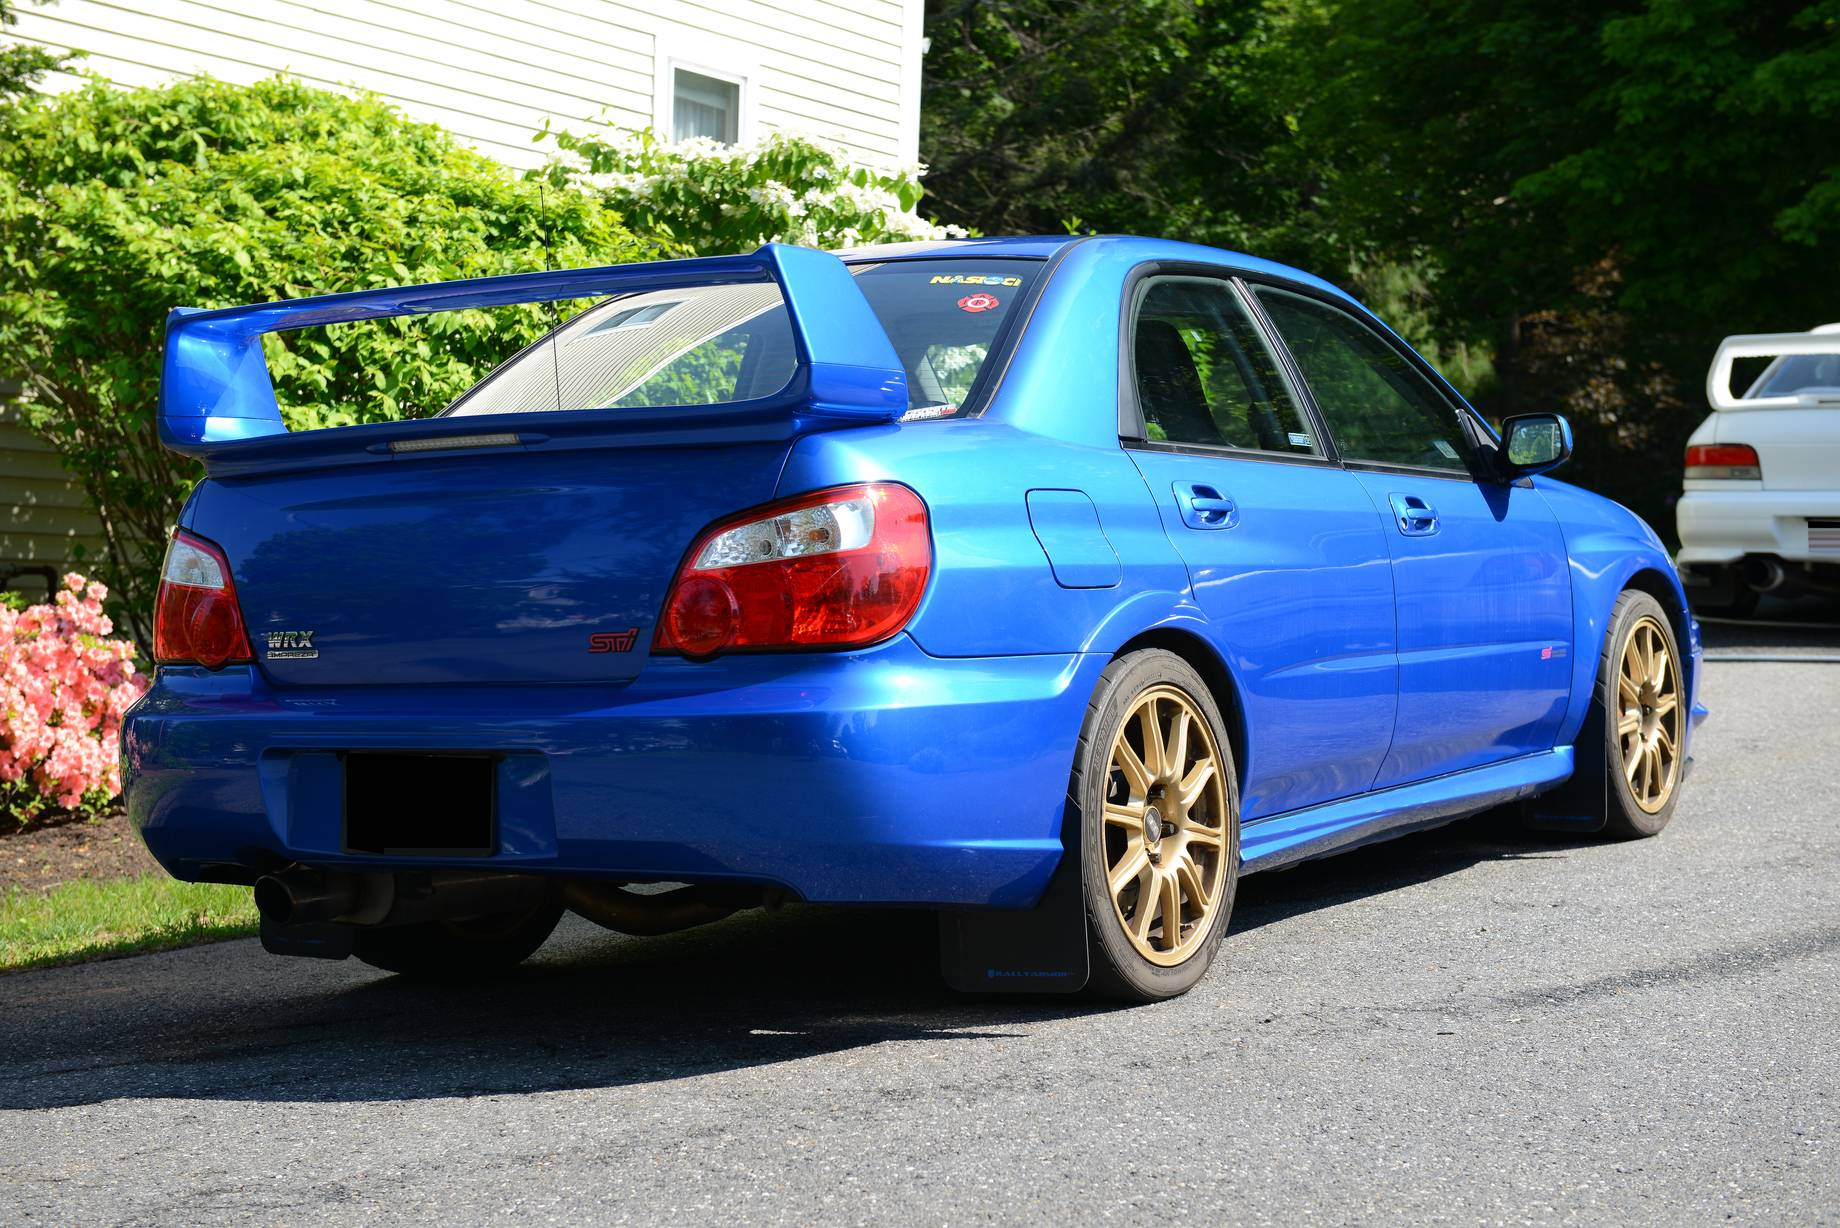 Modified Subaru Sti Clean And Track Ready For